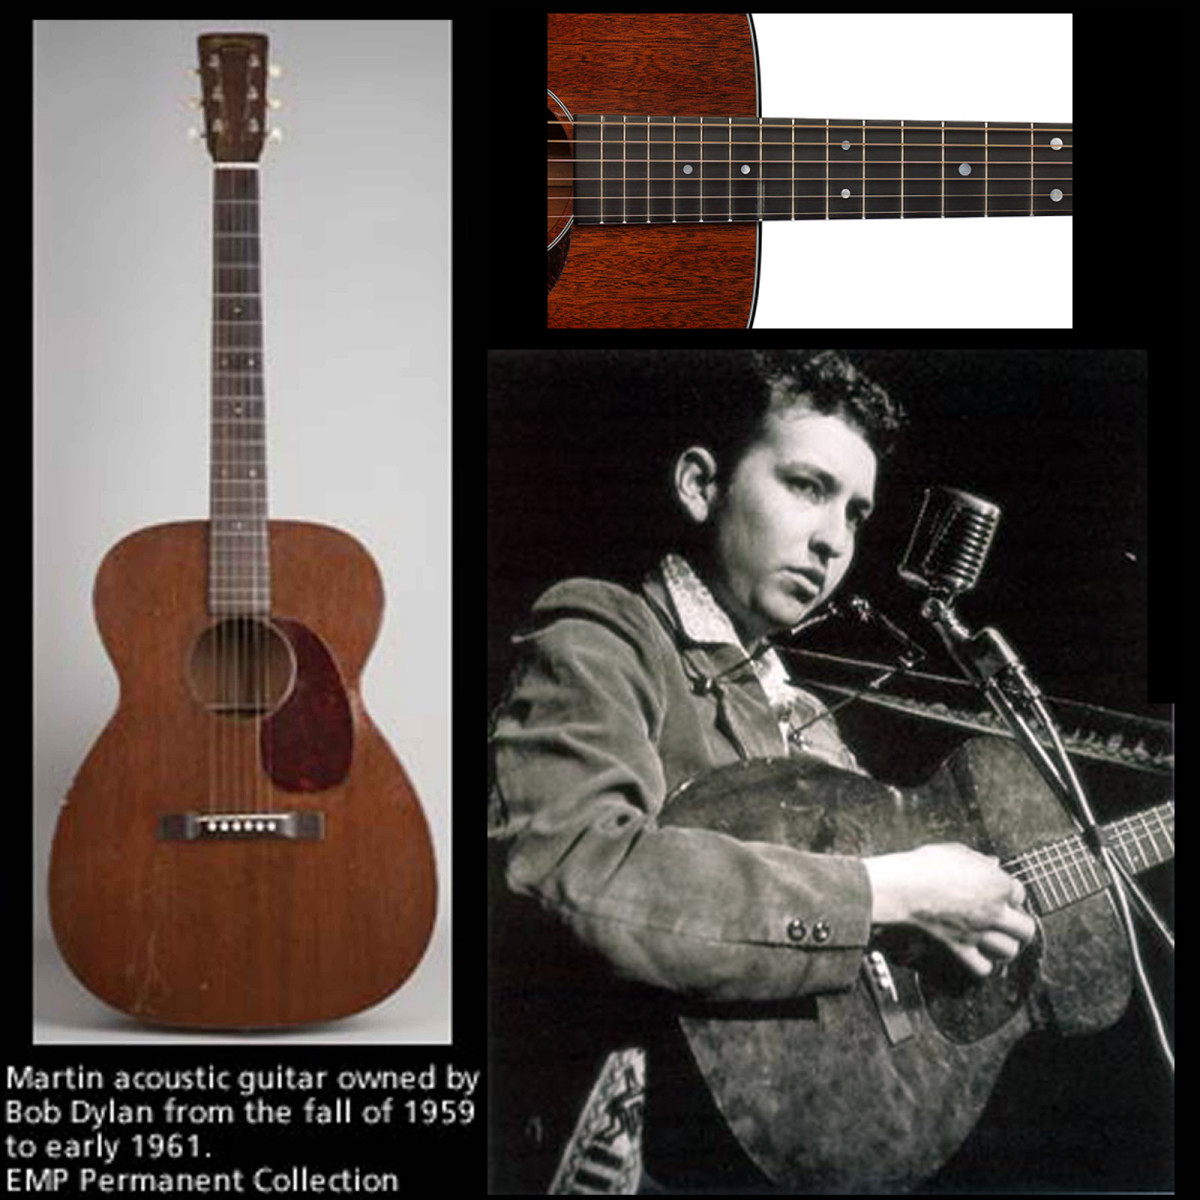 Bob Dylan and Martin Acoustic Guitars - The Martin 00-17, and The Martin 00-15